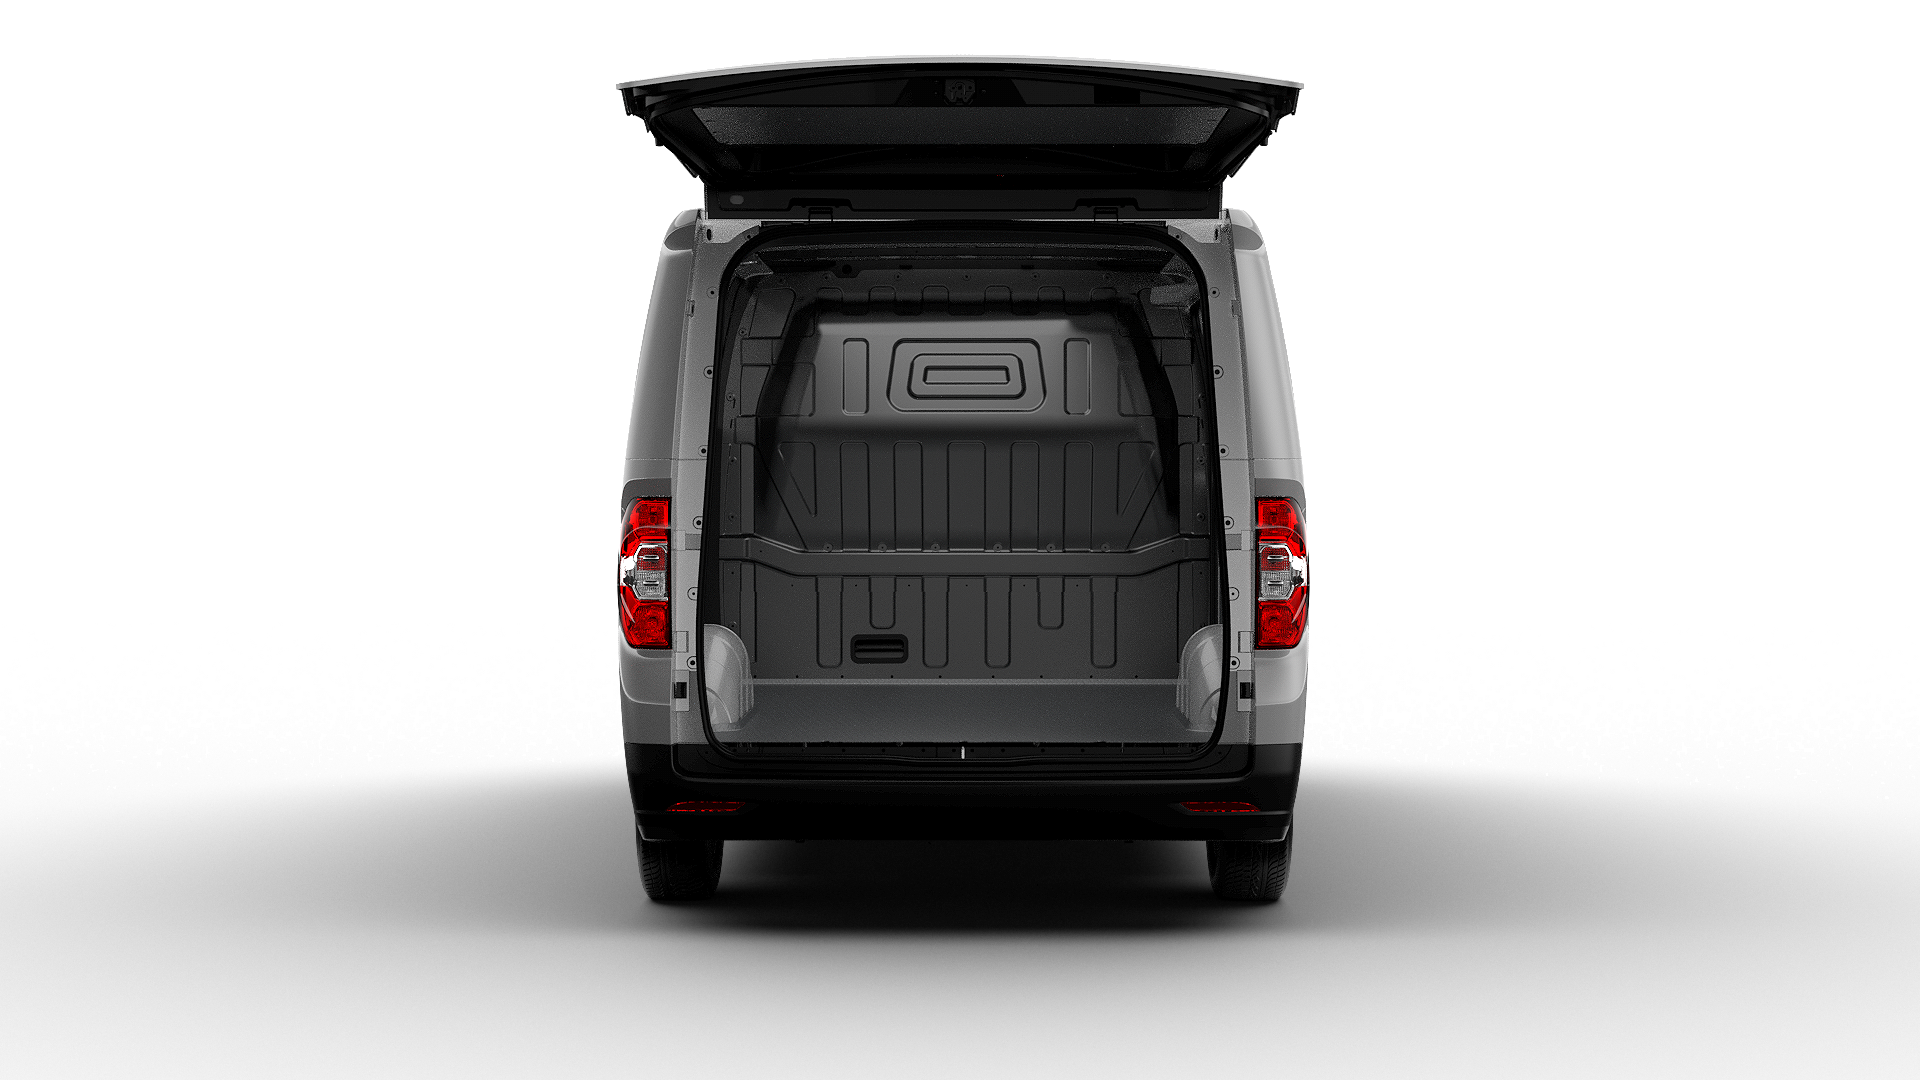 e Deliver 3 - rear view open(optional extra)